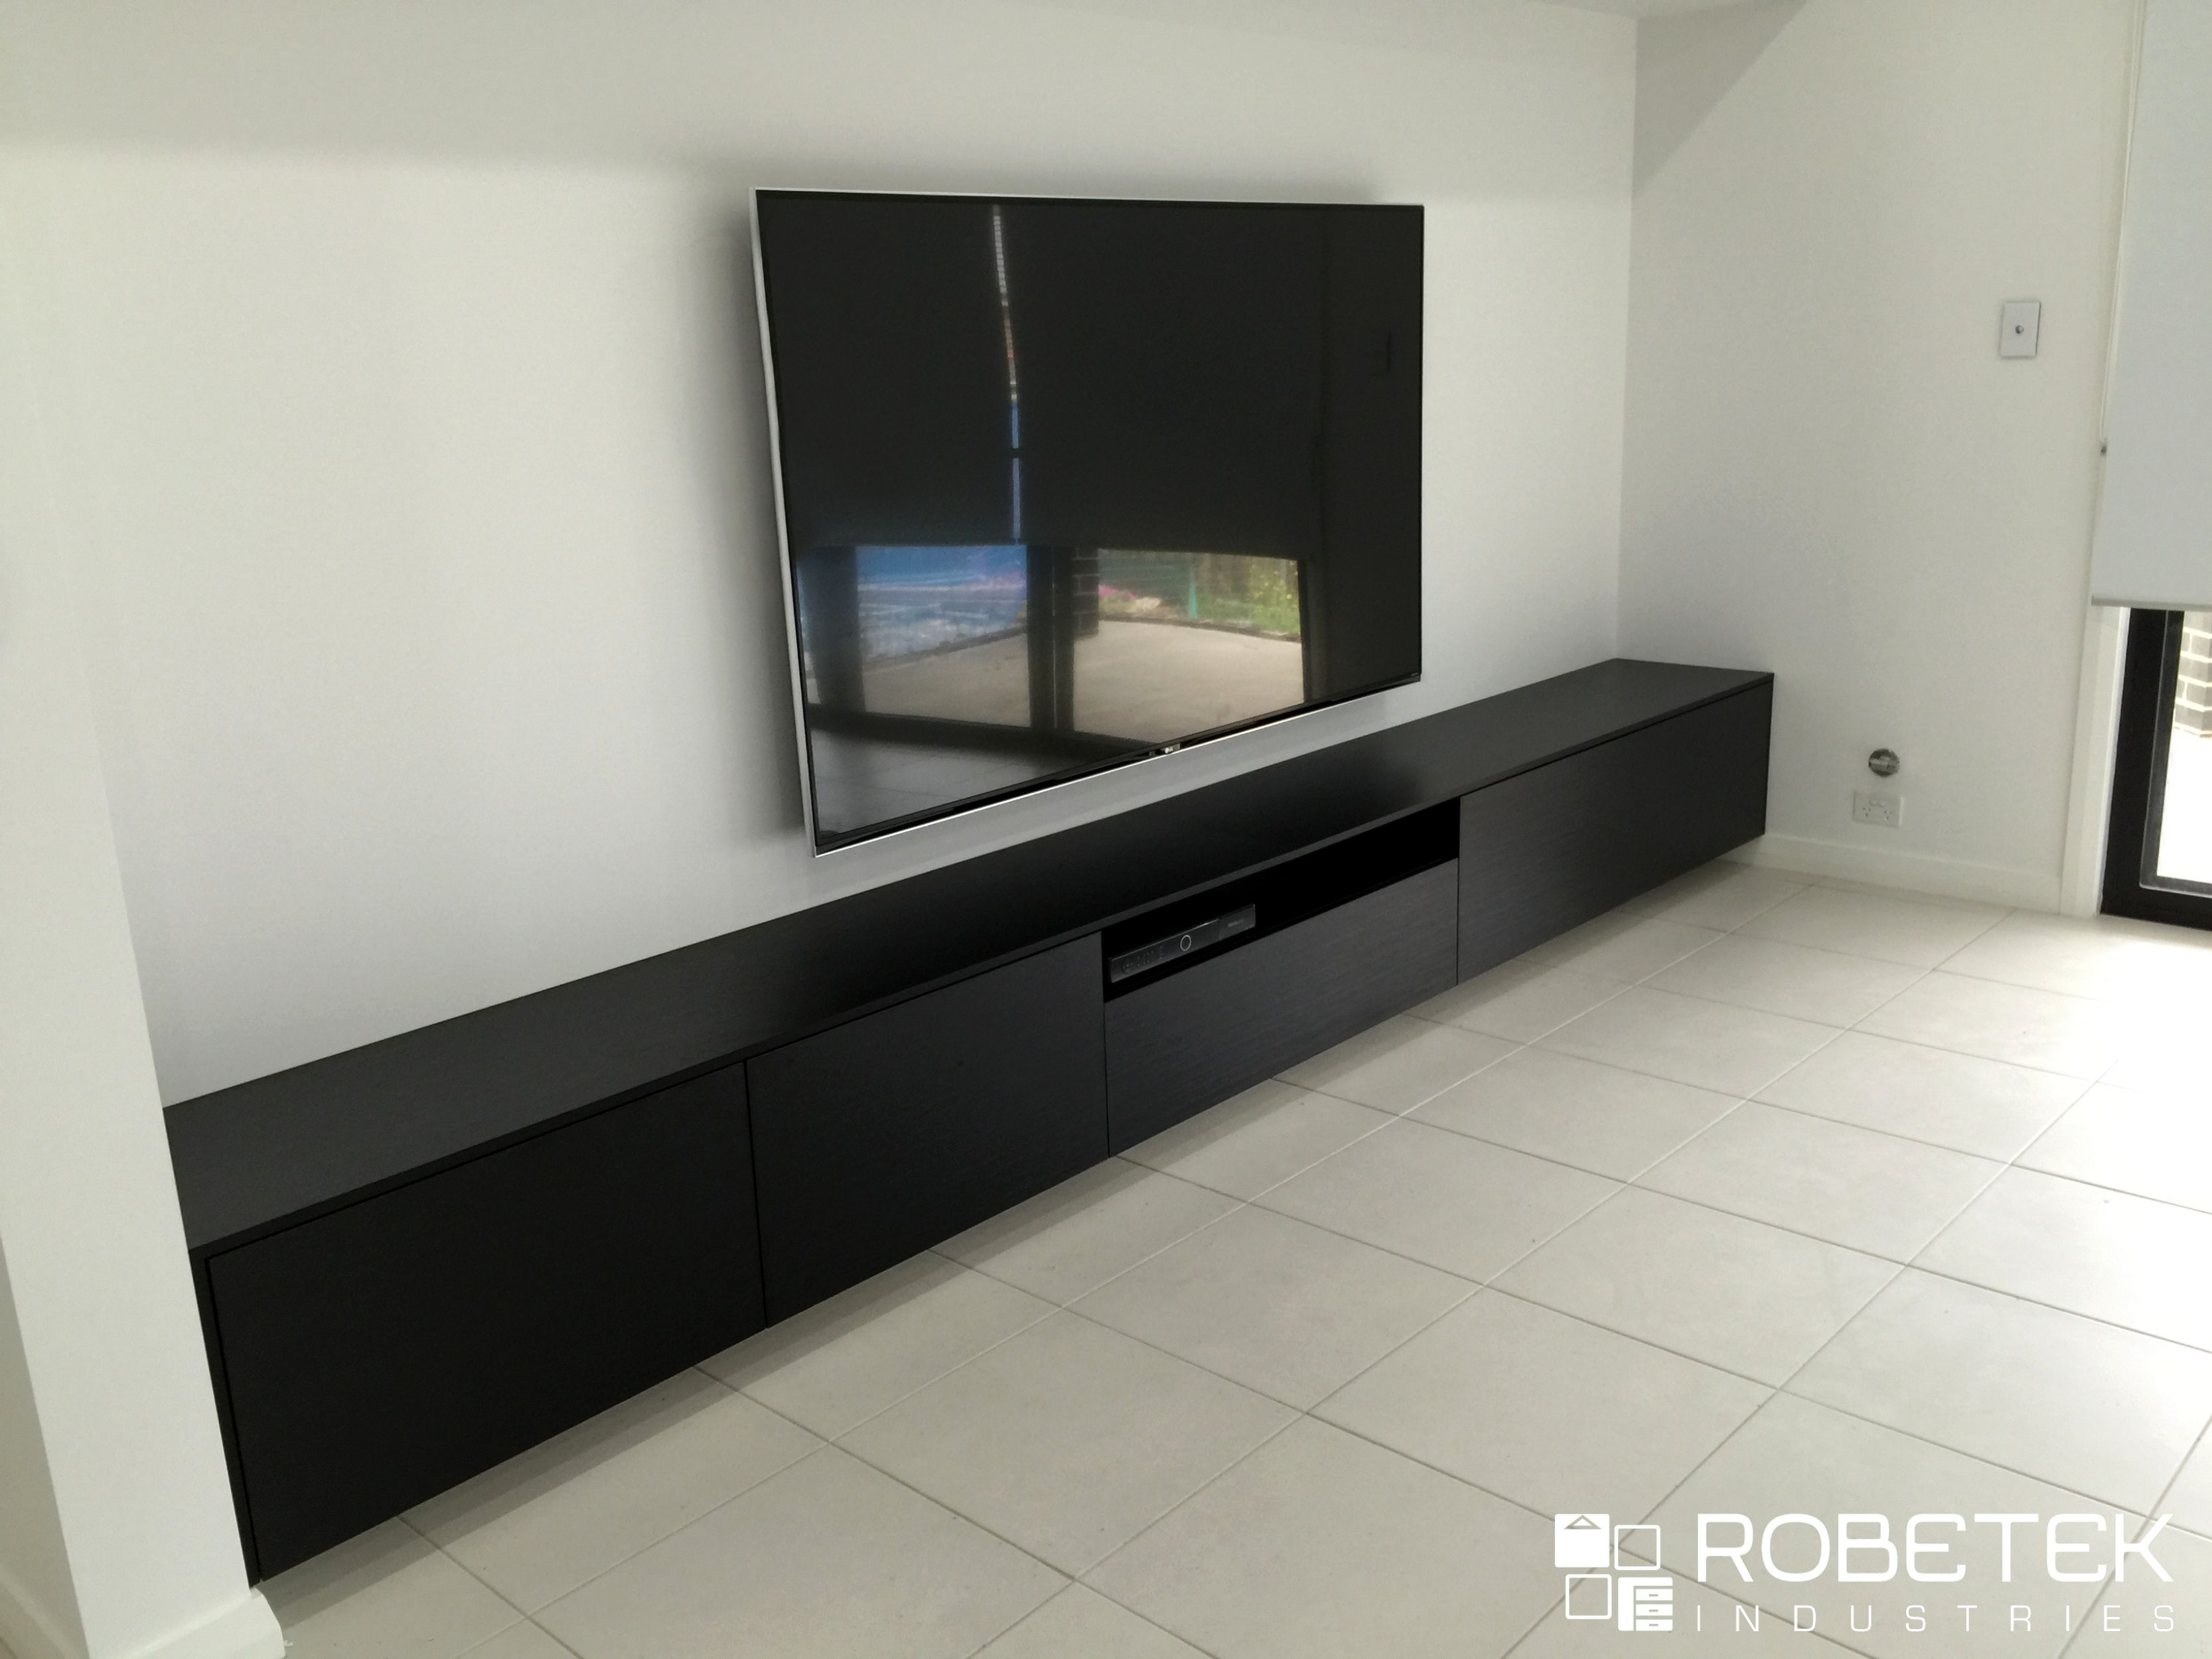 Custom Floating Tv Units This Floating Tv Unit Is A Stylish Statement That Is A Permanent Built In Solu Modern Tv Units Living Room Interior Black Tv Cabinet